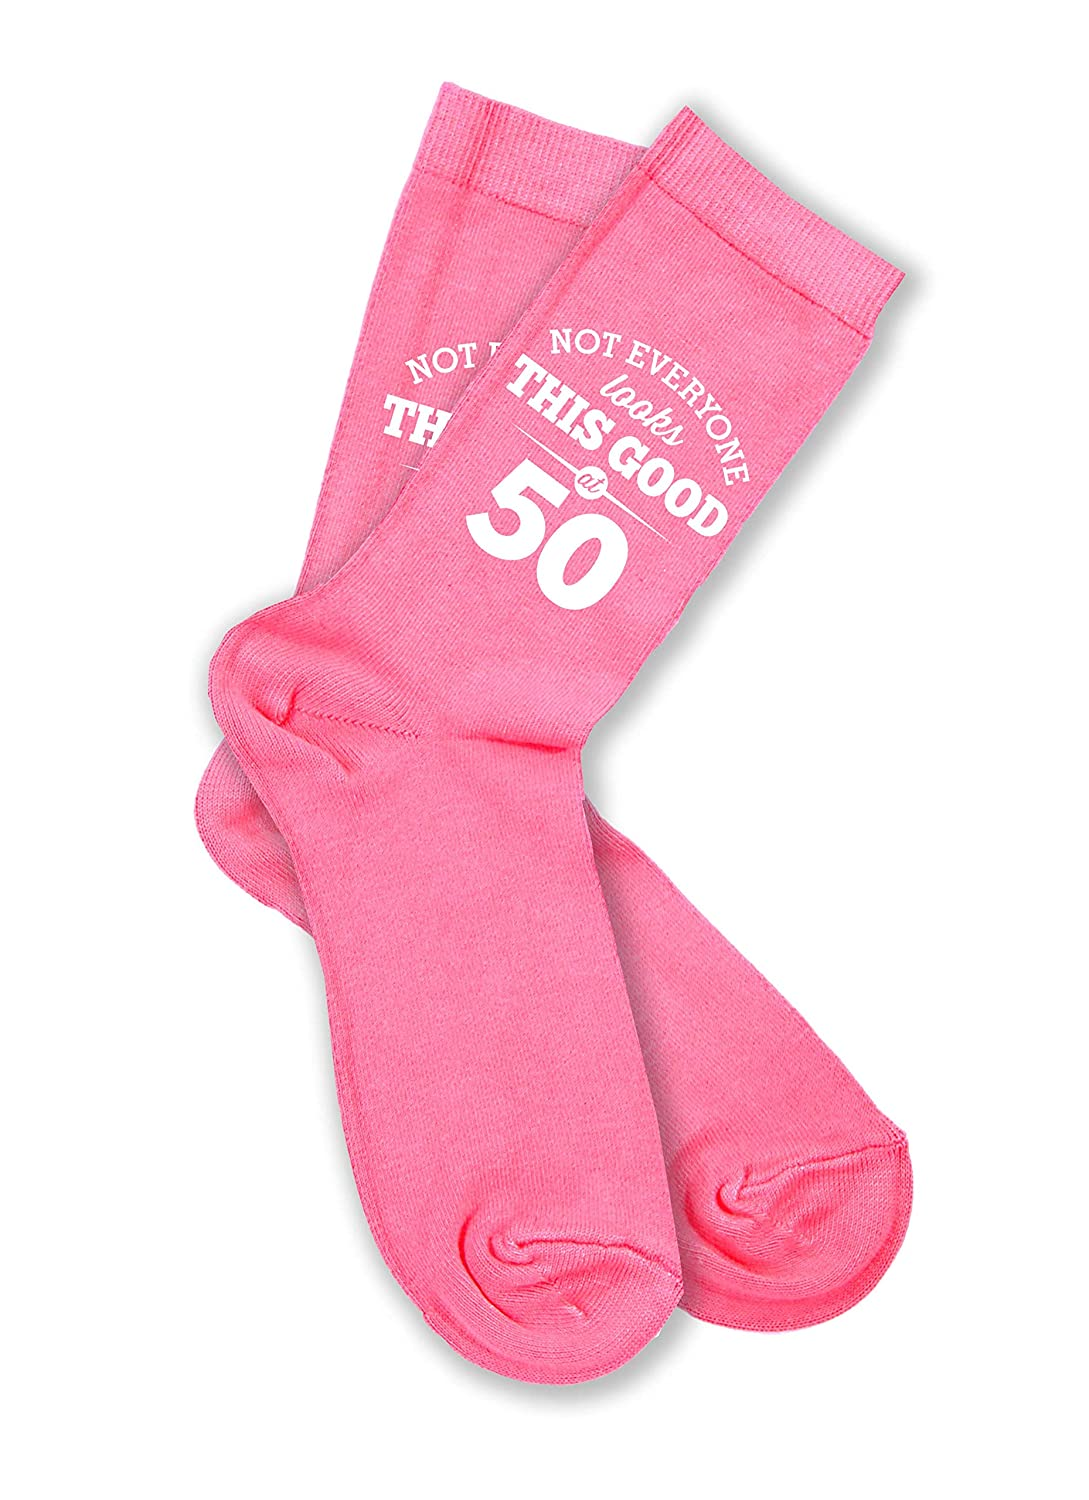 Details about  /Simply The Best 50 Year Old Socks 50th Birthday Christmas Novelty Gift Present